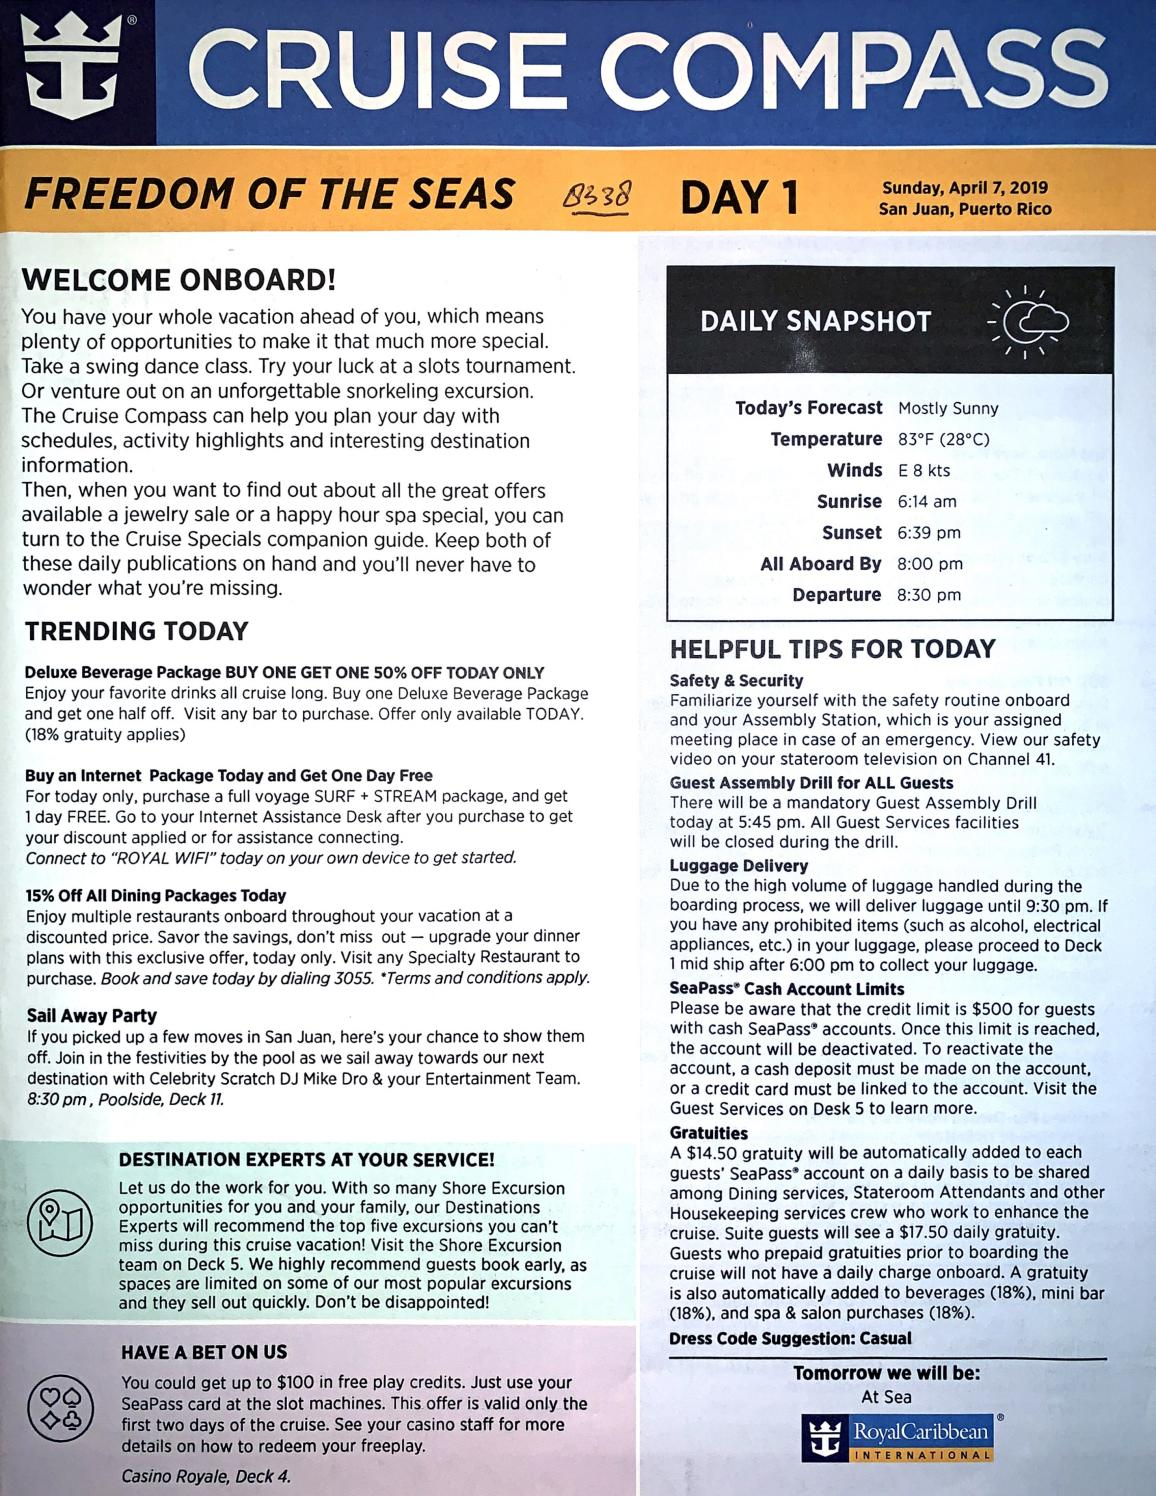 fec0ca470 Freedom of the Seas 7-night Southern Caribbean Cruise Compass - April 7